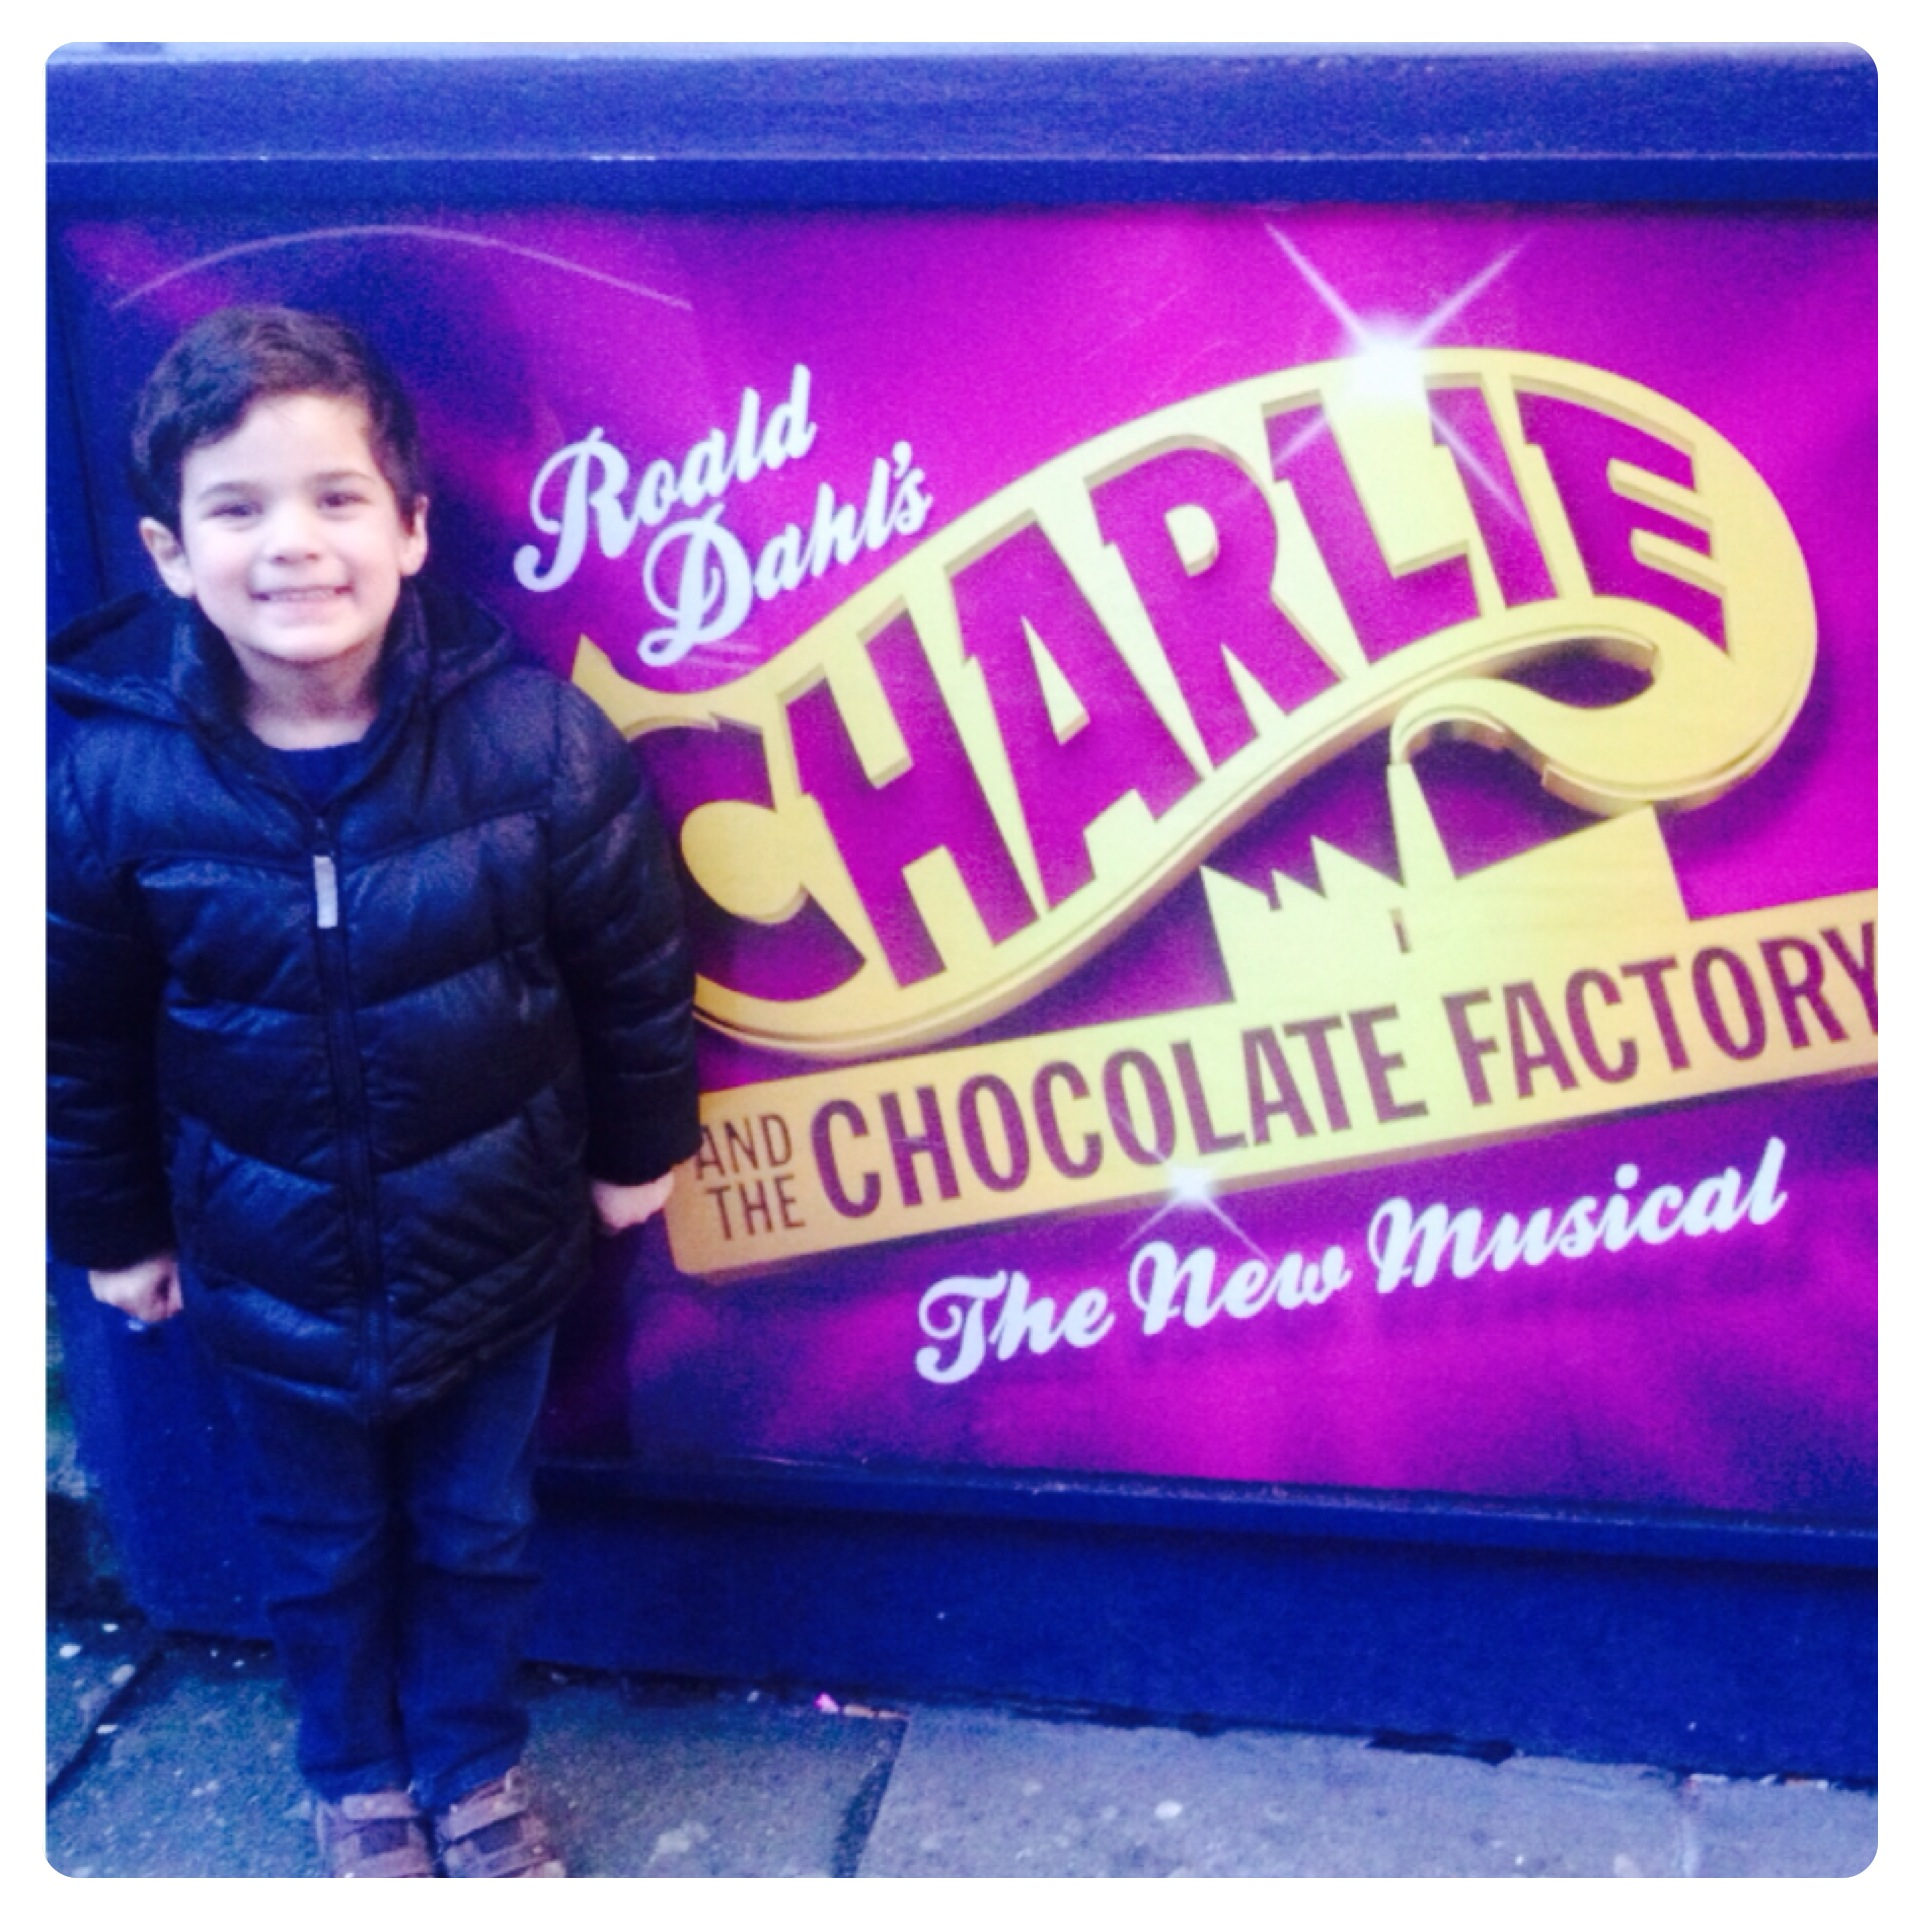 dahl charlie and the chocolate factory pdf